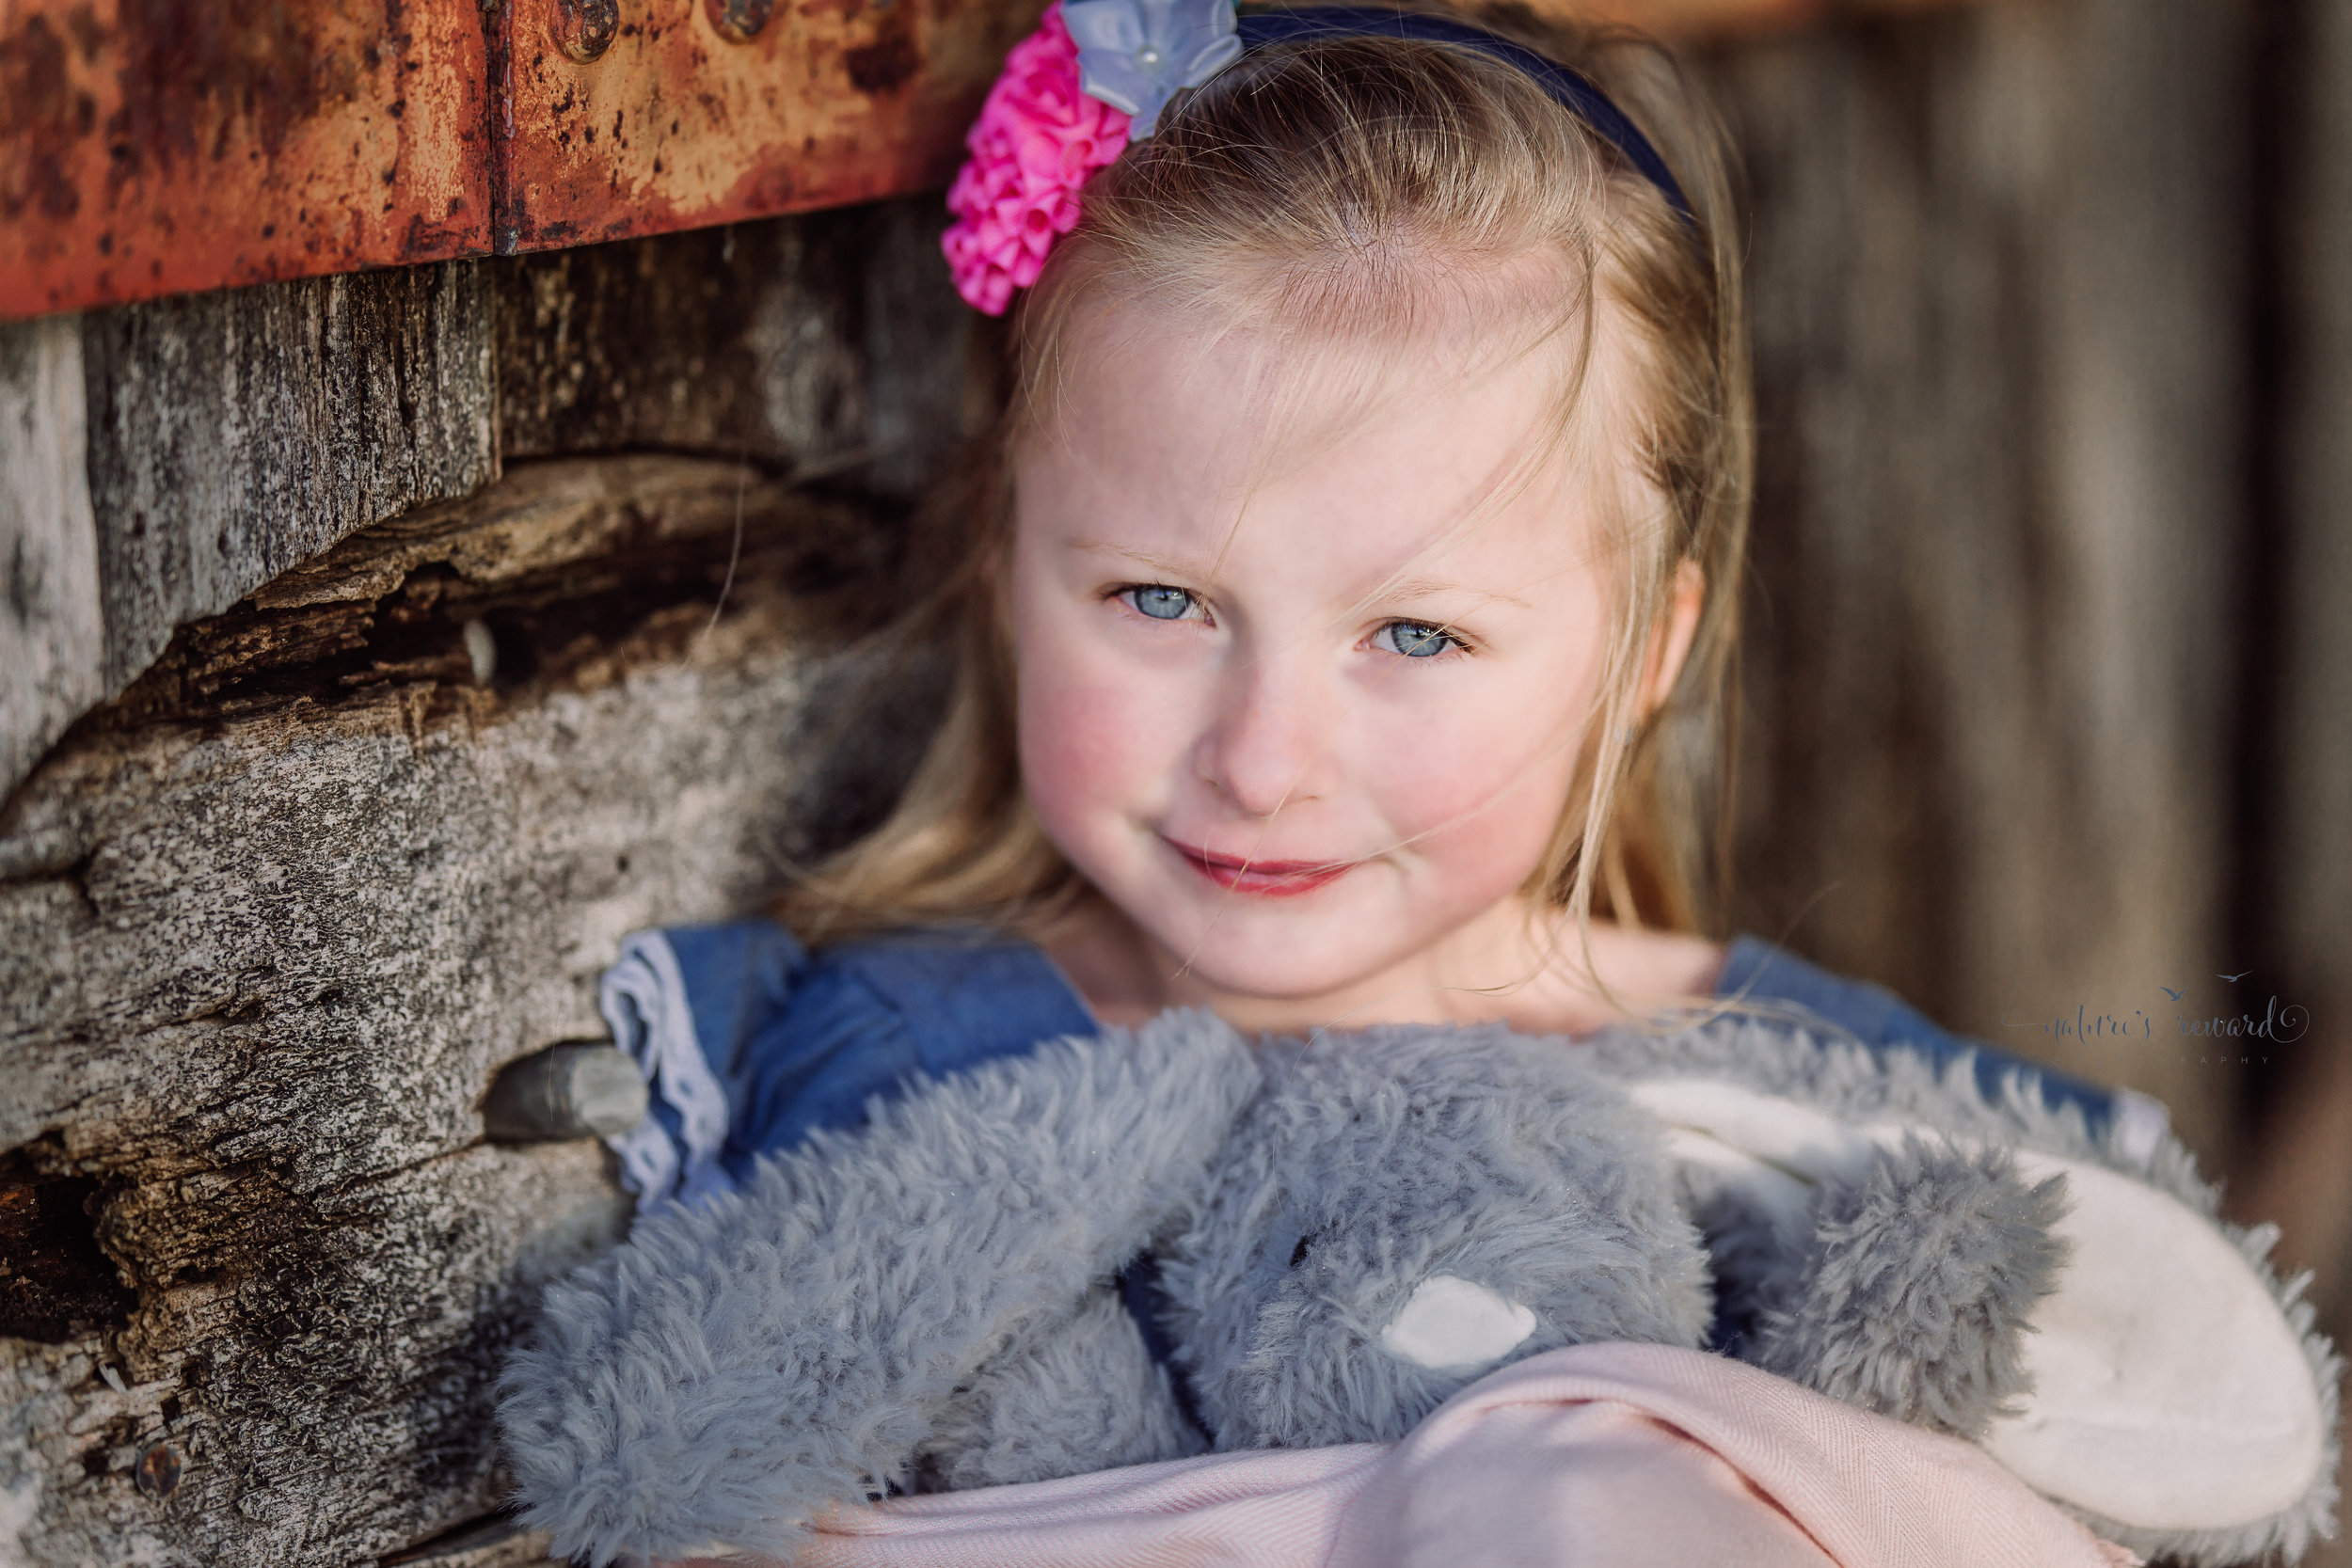 Mom fell in love with the way her baby girl's eyes sparkled in the sunshine in this close up by Nature's Reward Photography, a Southern California Photographer